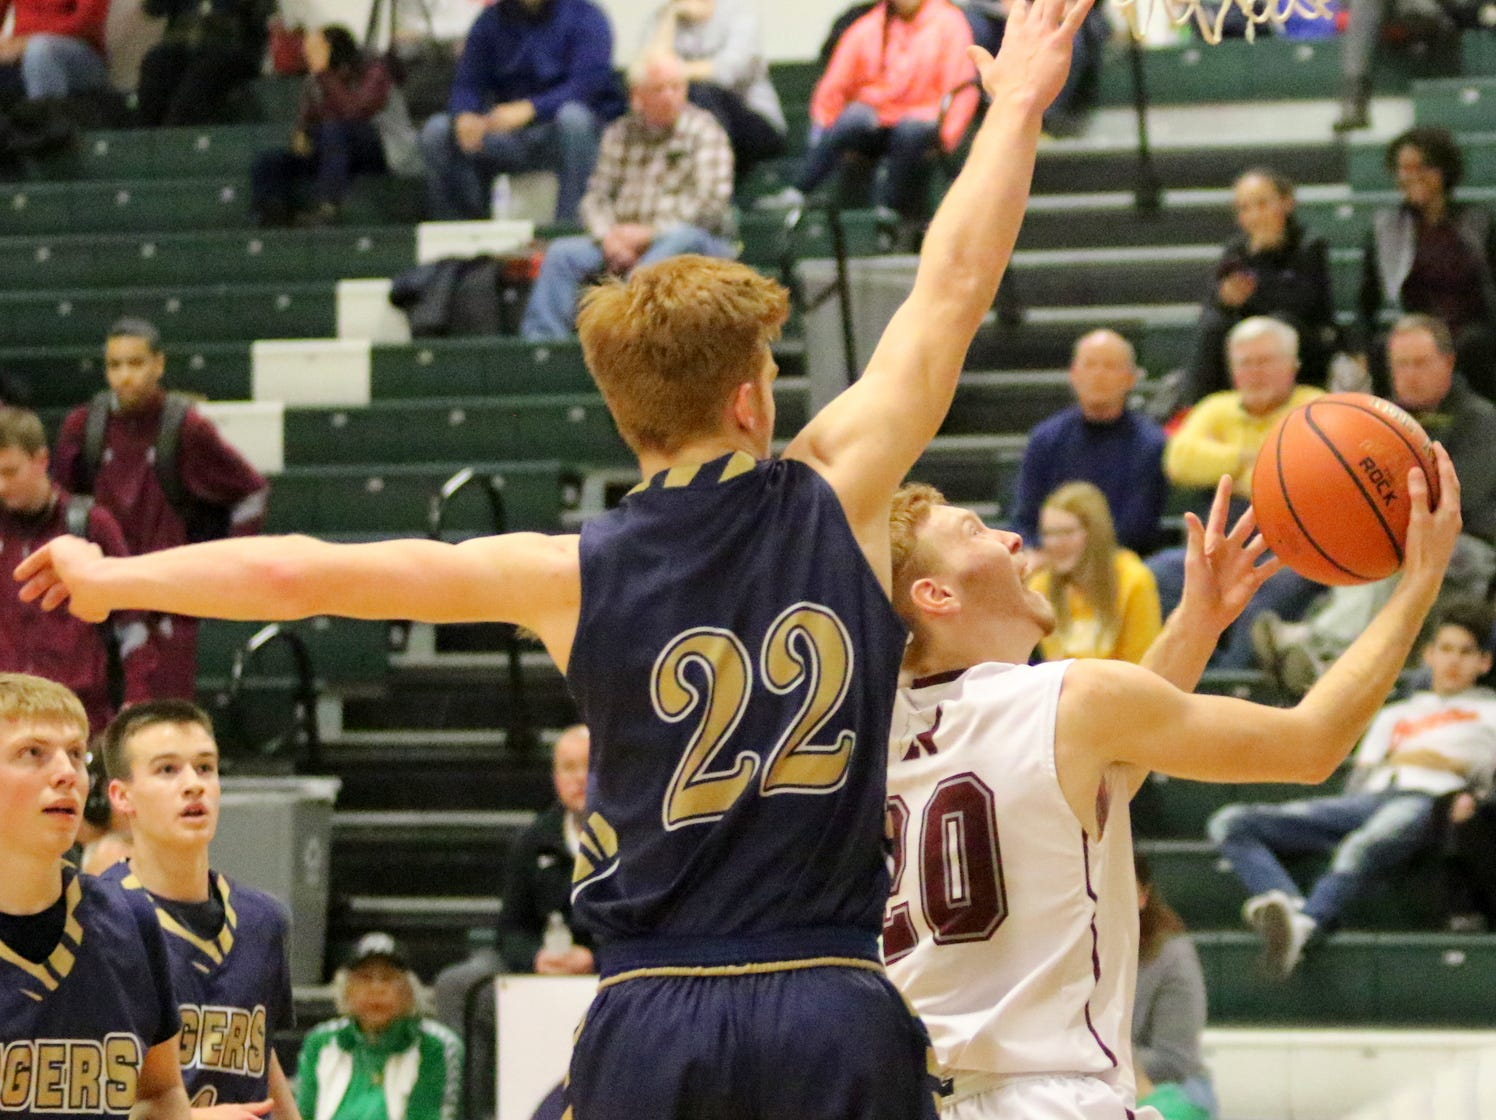 Newark was a 53-44 winner over North Penn-Mansfield in the boys Regional Division 1 championship game at the Josh Palmer Fund Elmira Holiday Inn Classic on Dec. 30, 2018 at Elmira High School.